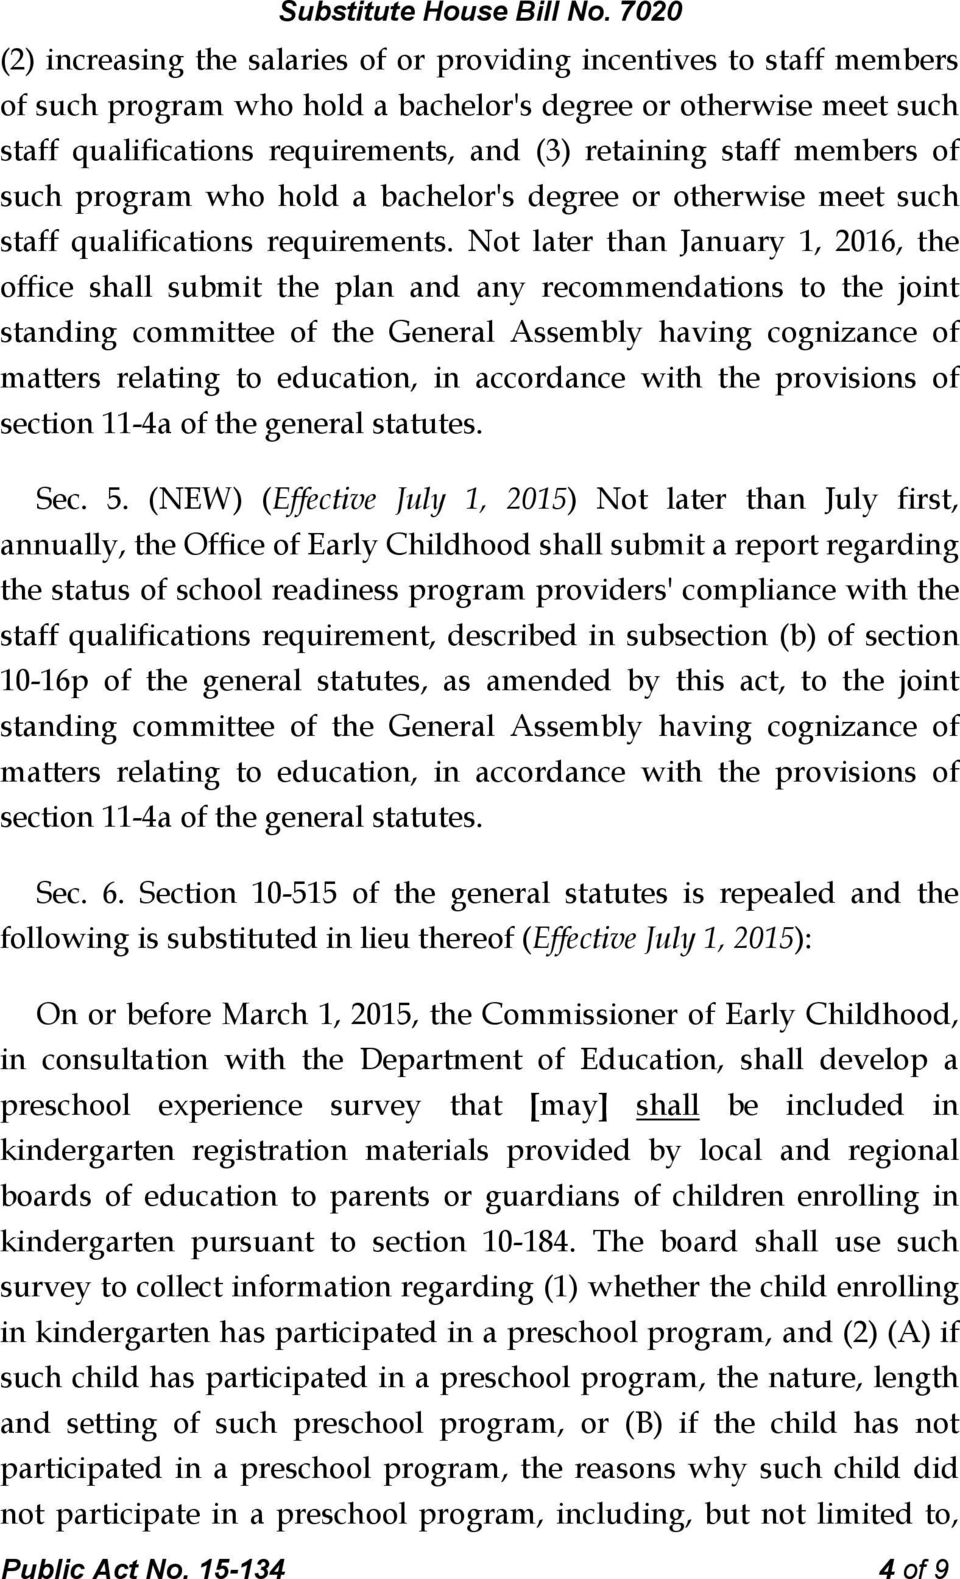 Not later than January 1, 2016, the office shall submit the plan and any recommendations to the joint standing committee of the General Assembly having cognizance of matters relating to education, in